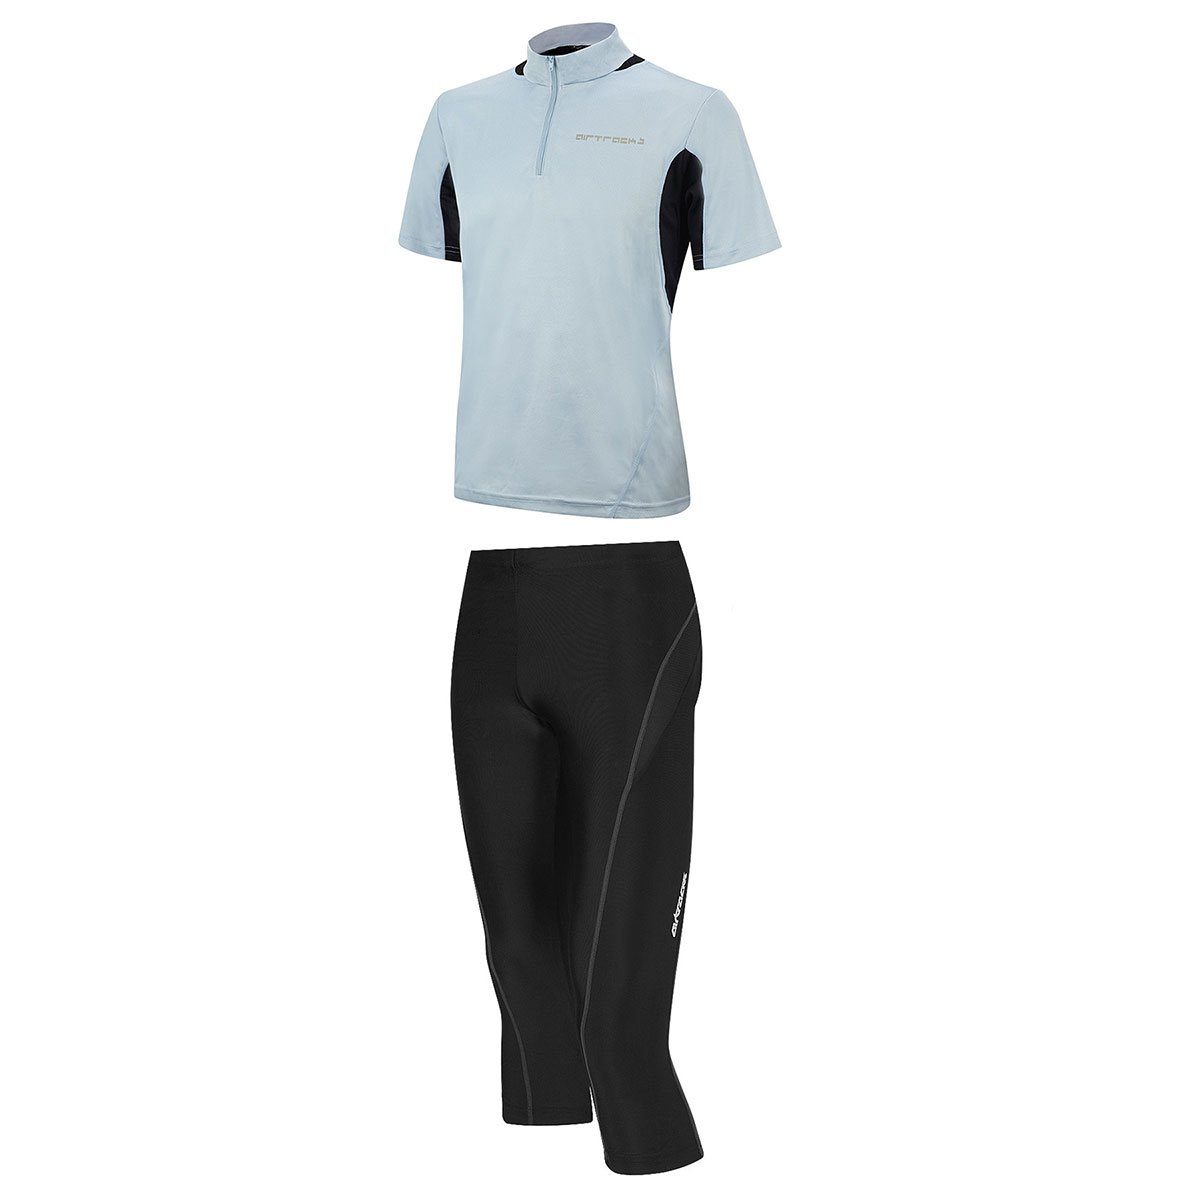 AIRTRACKS FUNKTIONS-LAUFSET - TIGHT-3/4-LANG PRO T + T-SHIRT KURZARM PRO